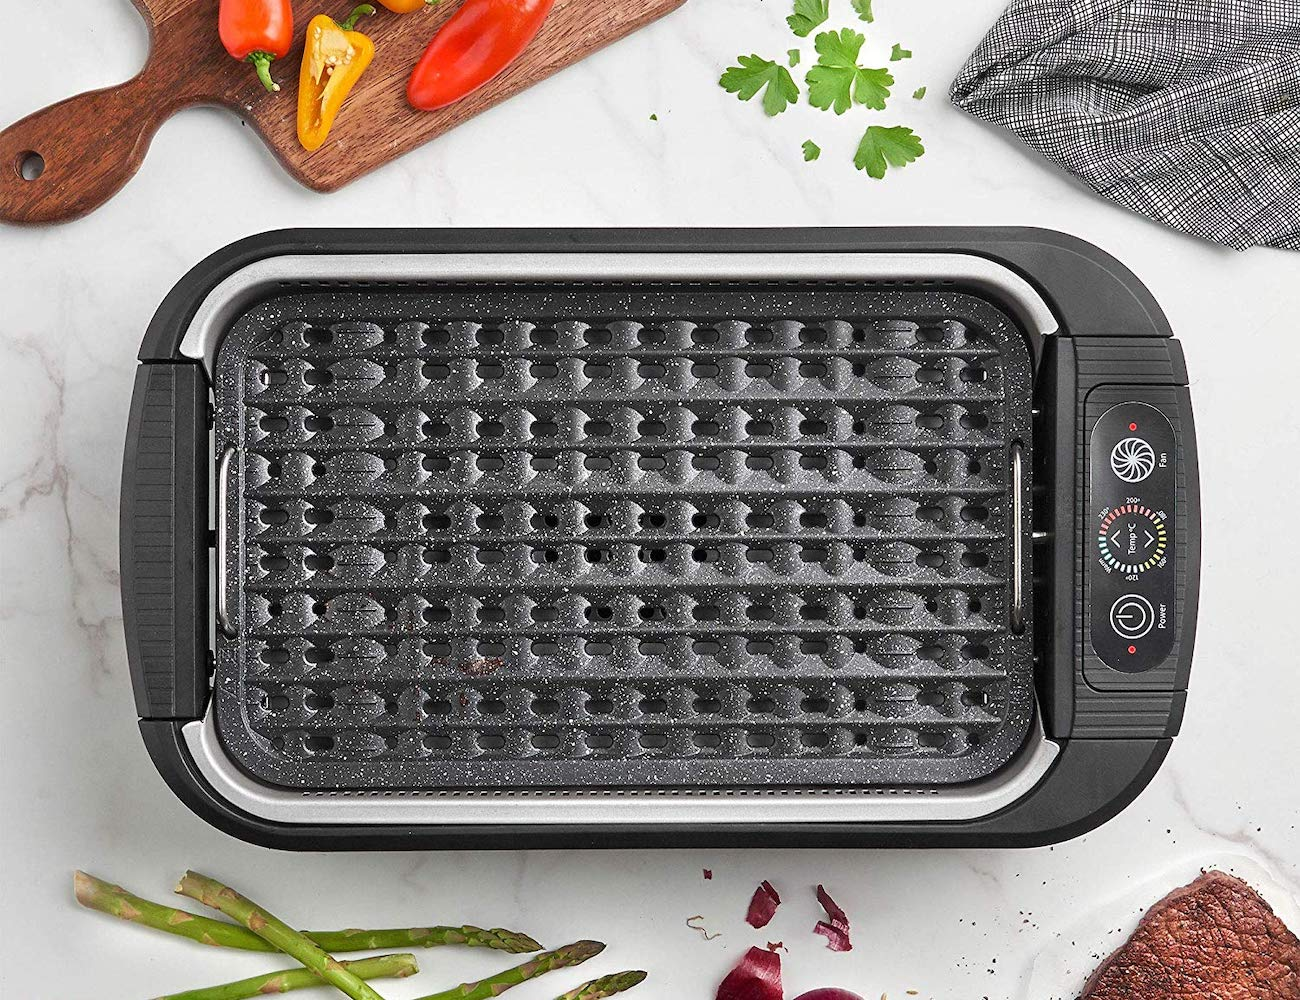 Electric Smokeless Grill by VonShef gives you an indoor BBQ